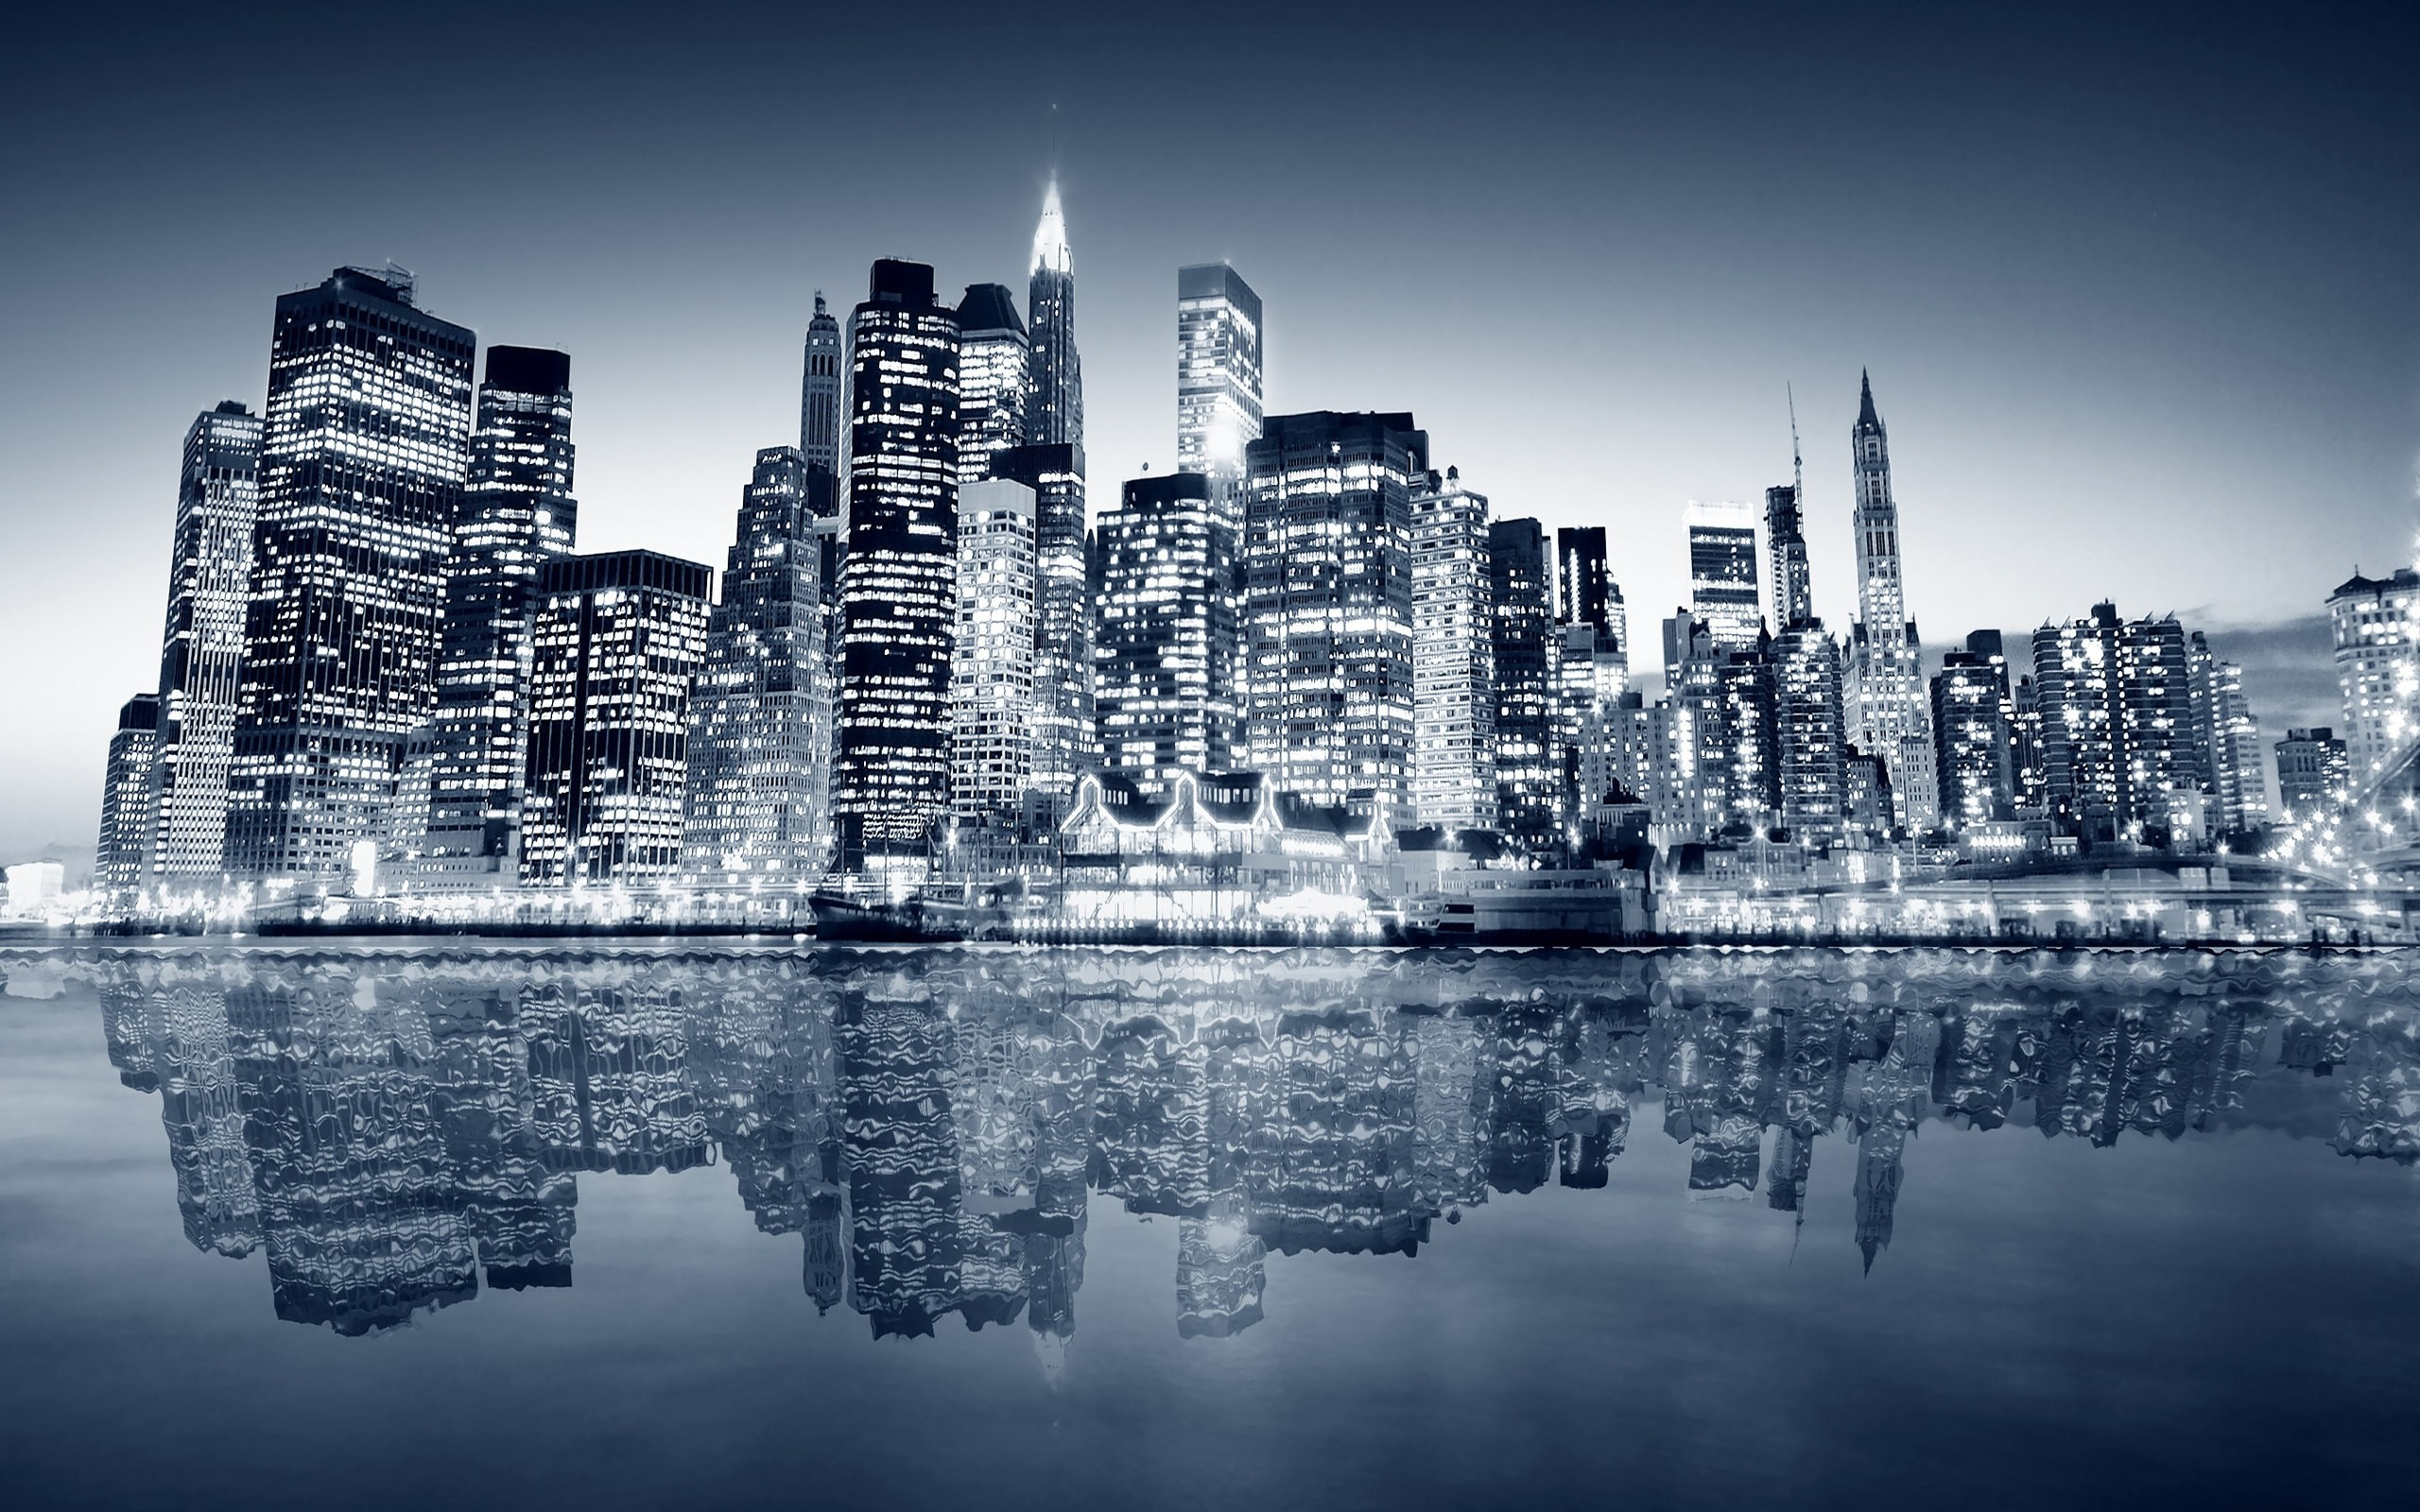 2560x1600 Black And White New York Skyline 9 Wallpaper HD hd backgrounds hd  screensavers hd wallpapers 1080p